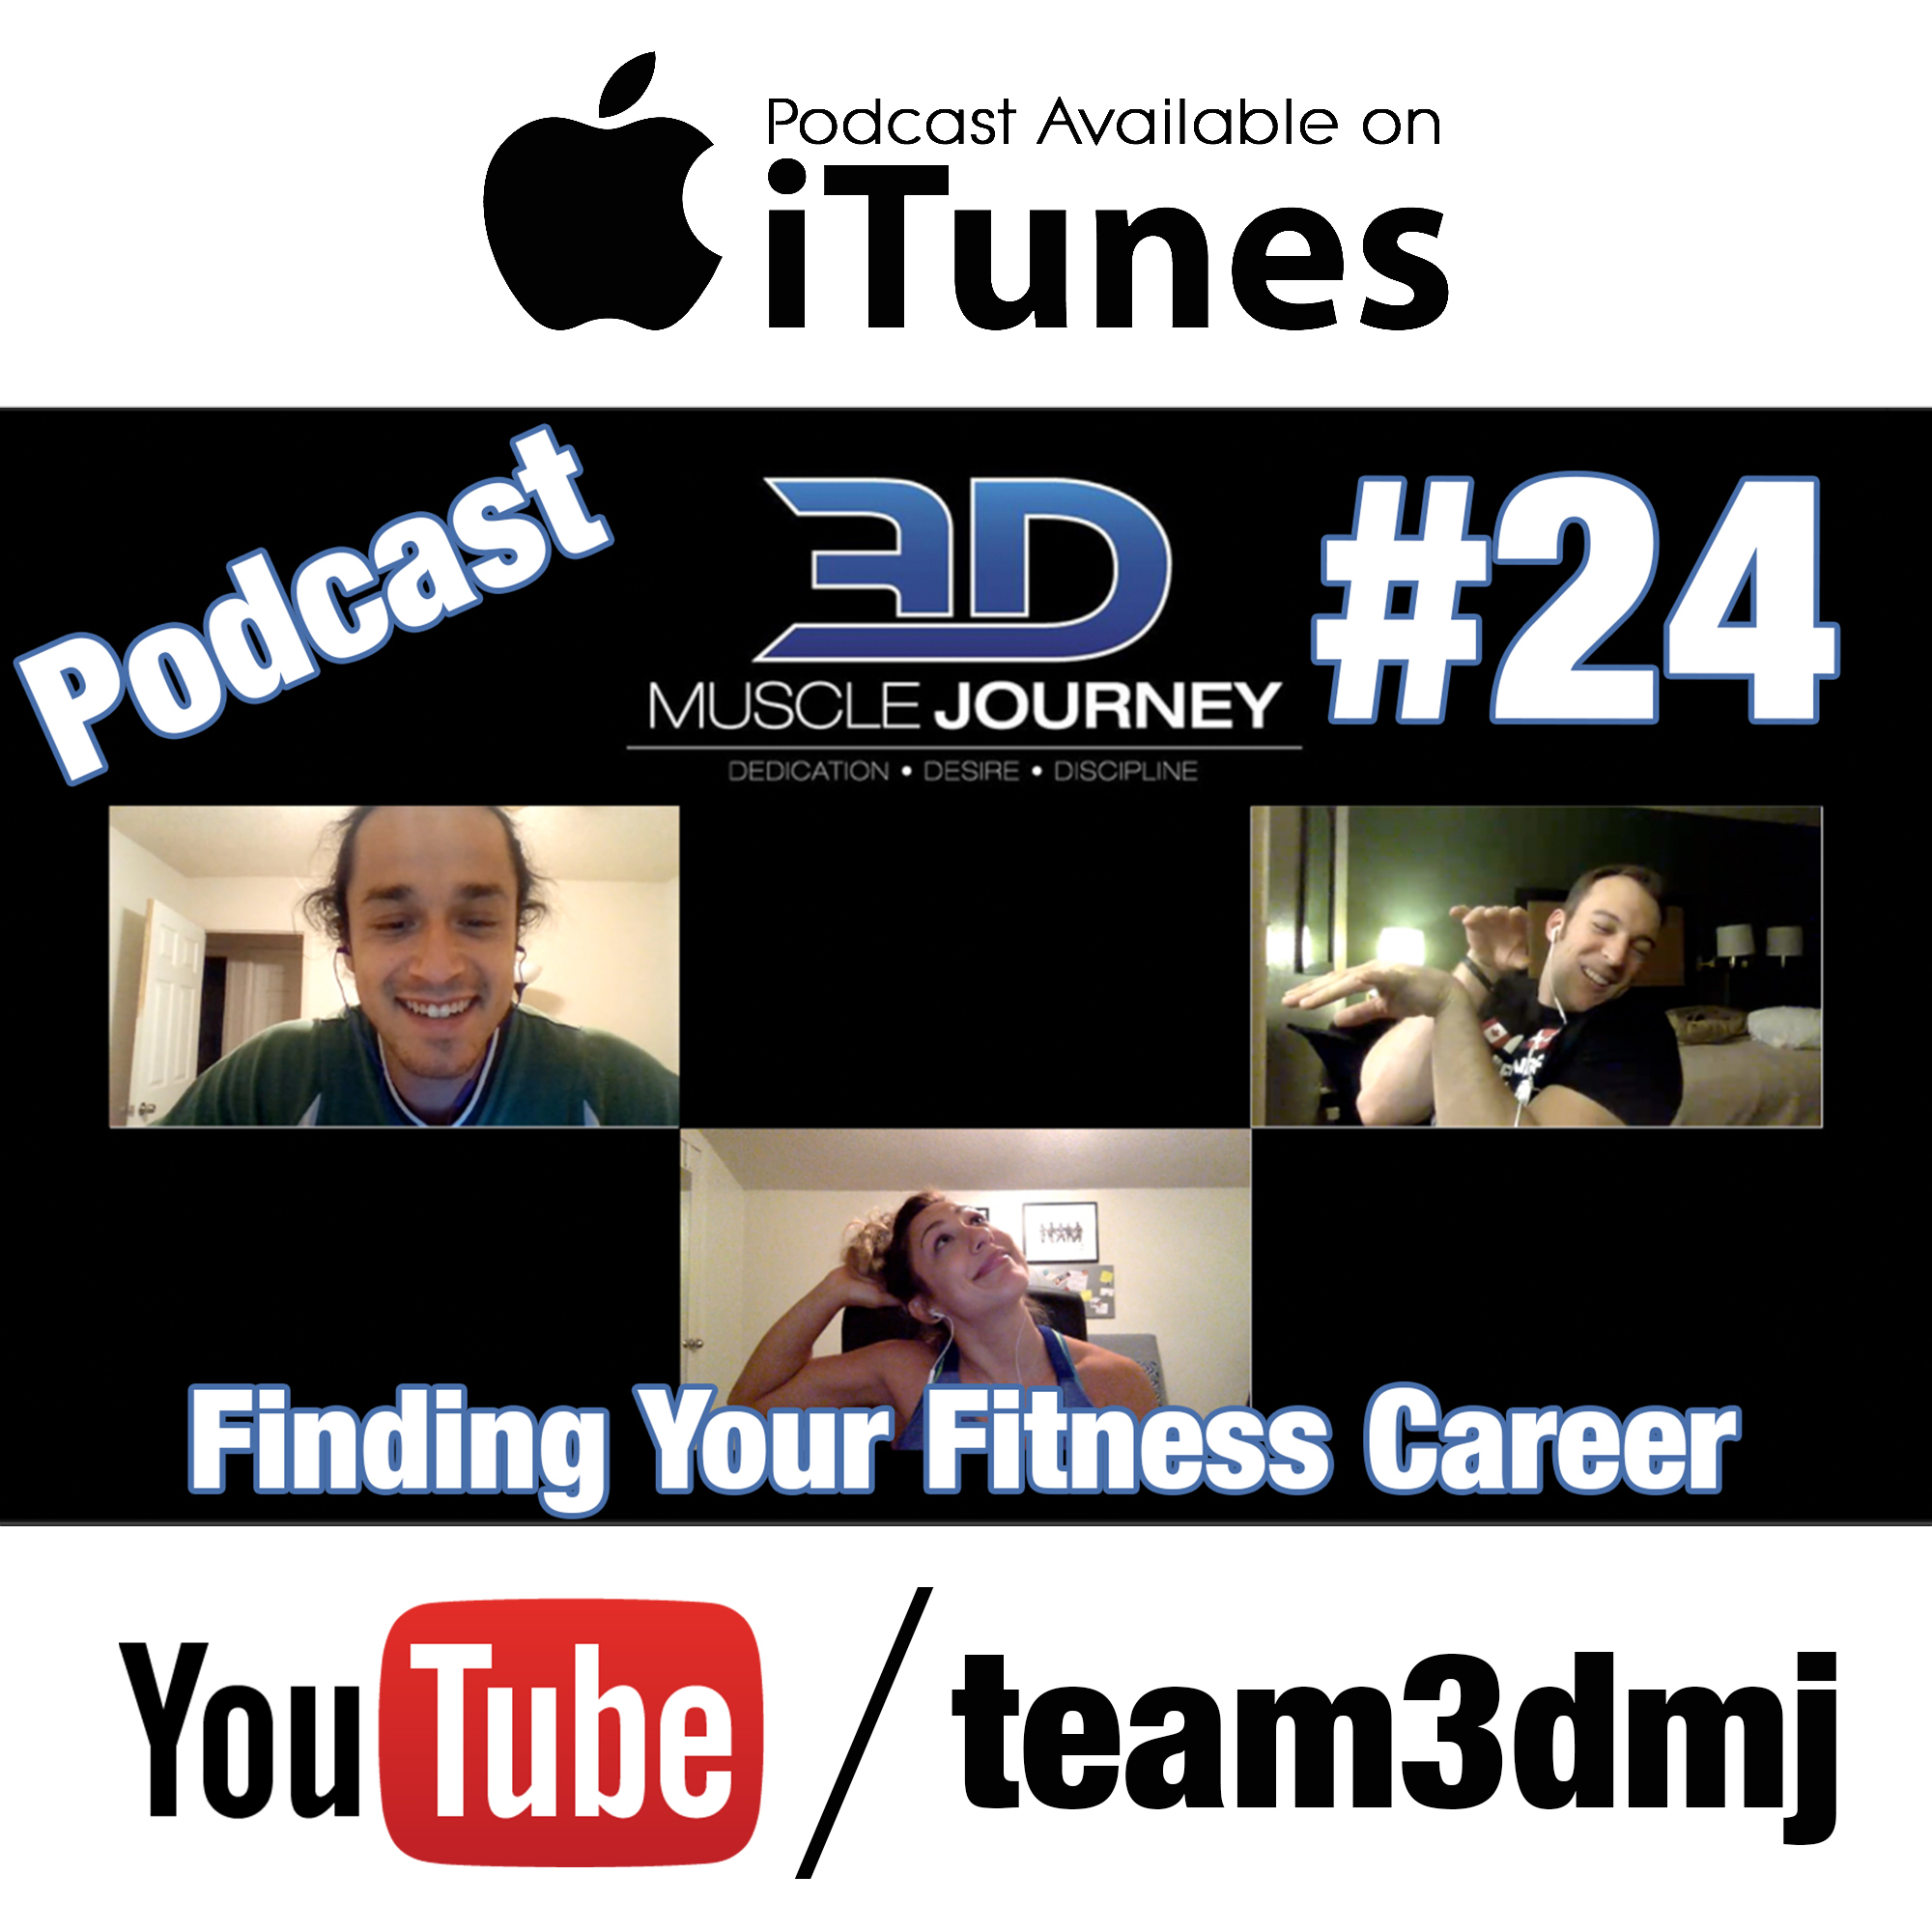 dmj podcast finding your fitness career